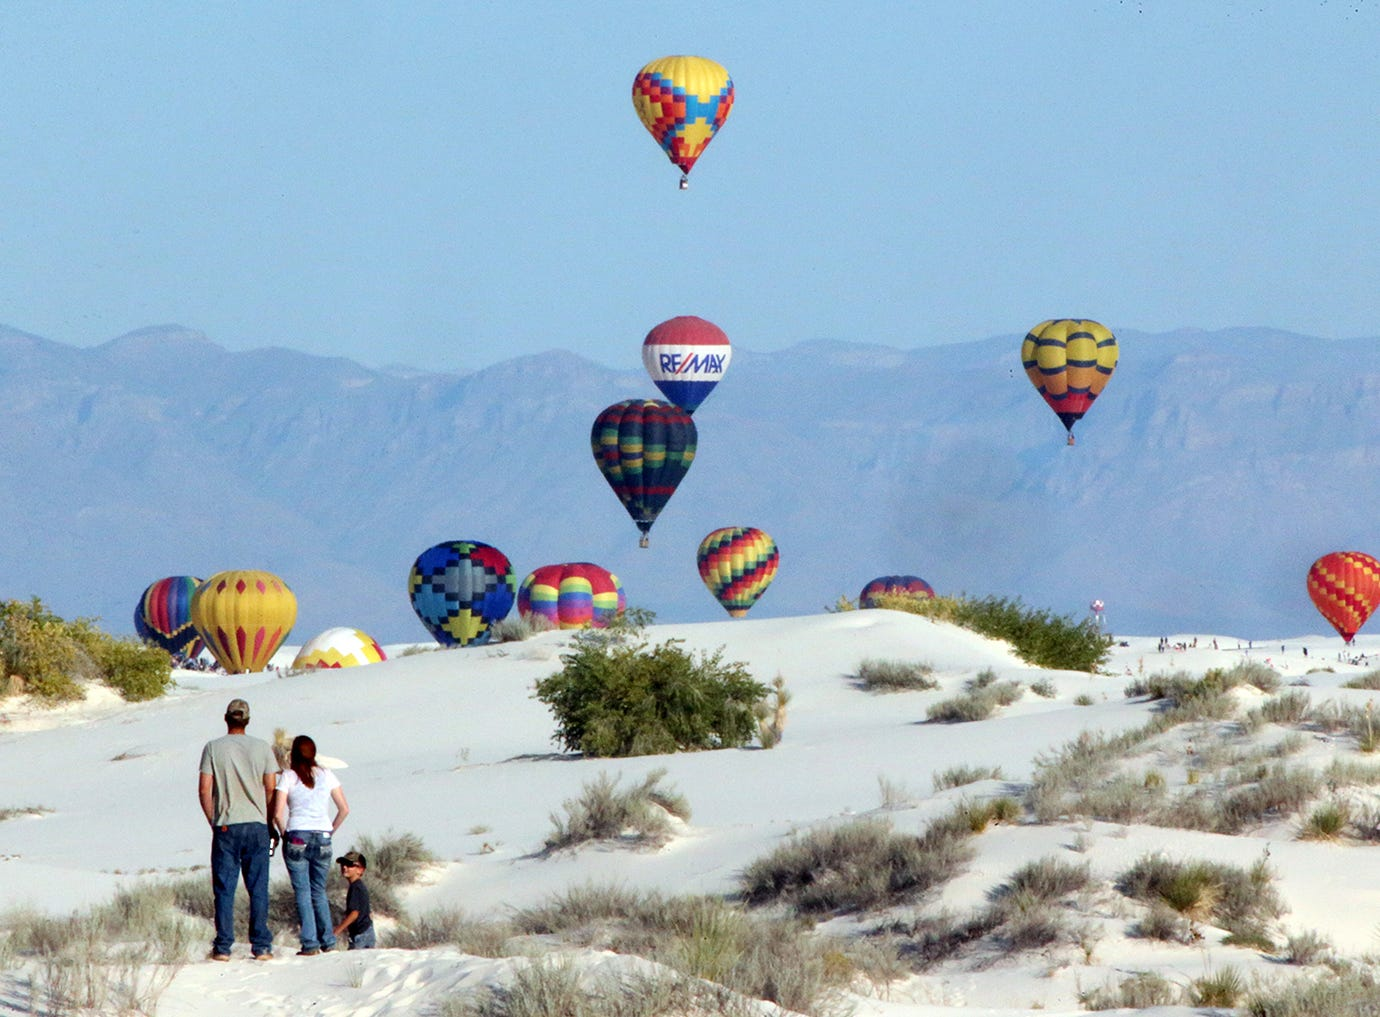 Hot air balloons go aloft over the dunes during the 2018 White Sands Balloon Invitational Saturday, Sept. 15 at White Sands National Monument.  A long trail of vehicles snaked into the monument with people setting up viewing positions with chairs and umbrellas atop the dunes.